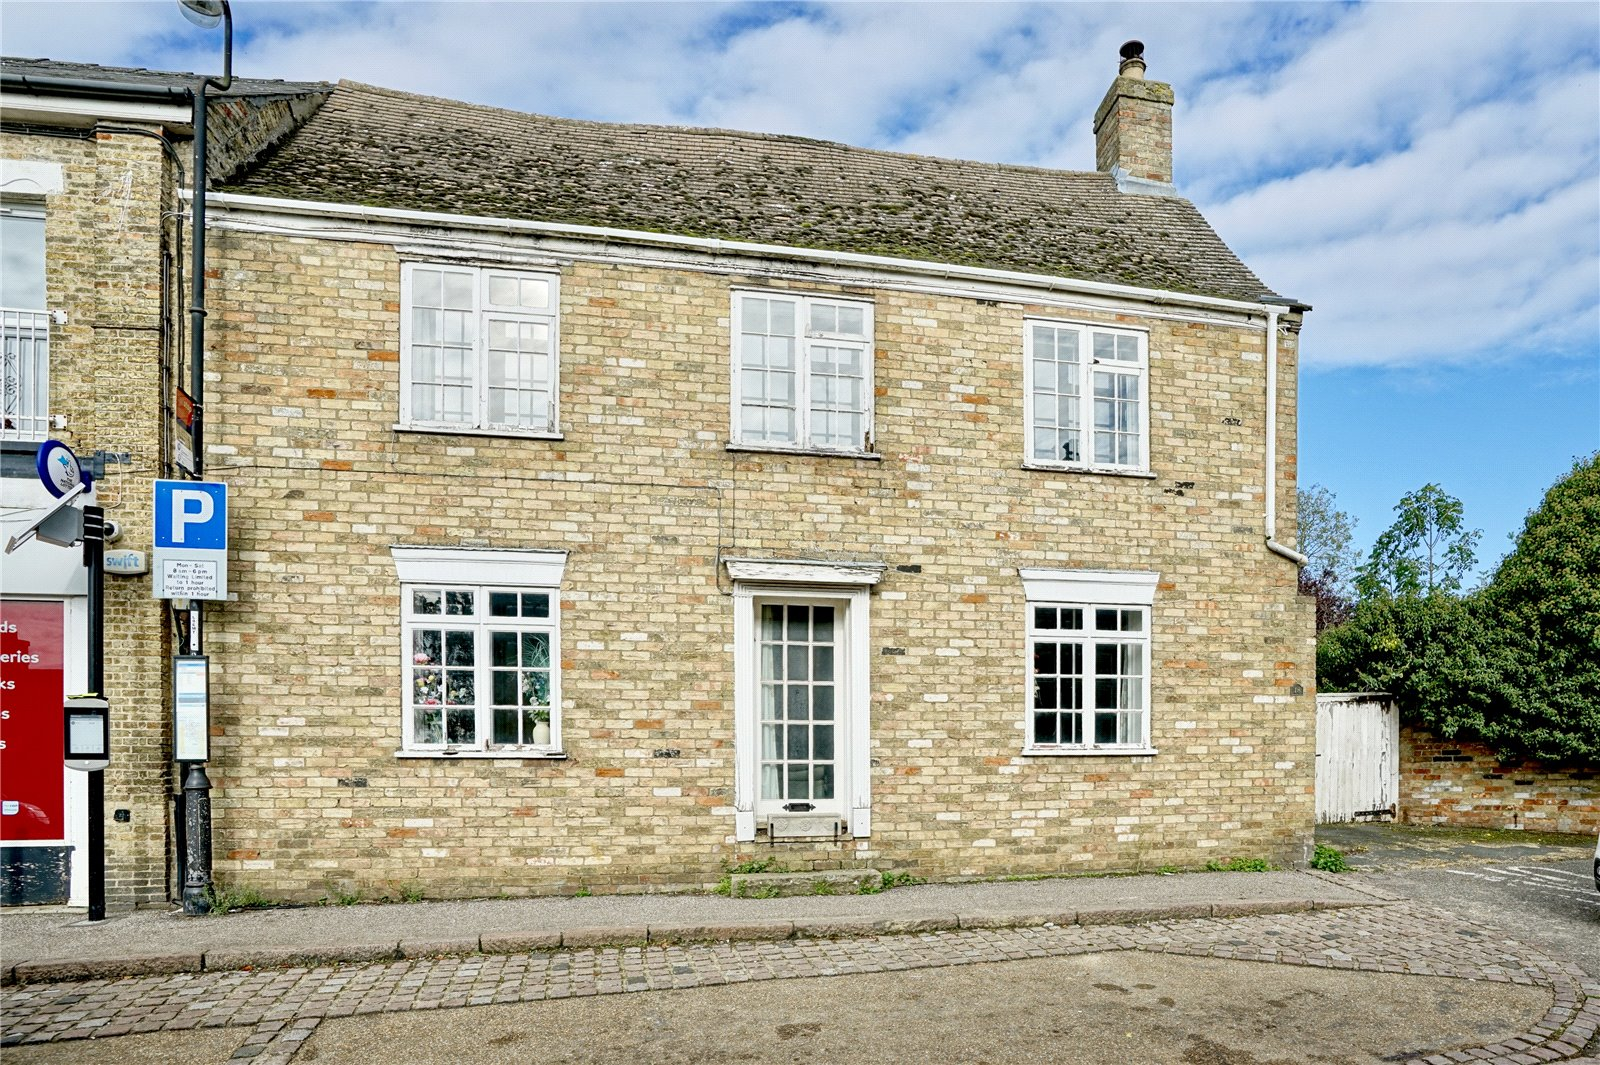 3 bed house for sale in Sutton, CB6 2RB - Property Image 1